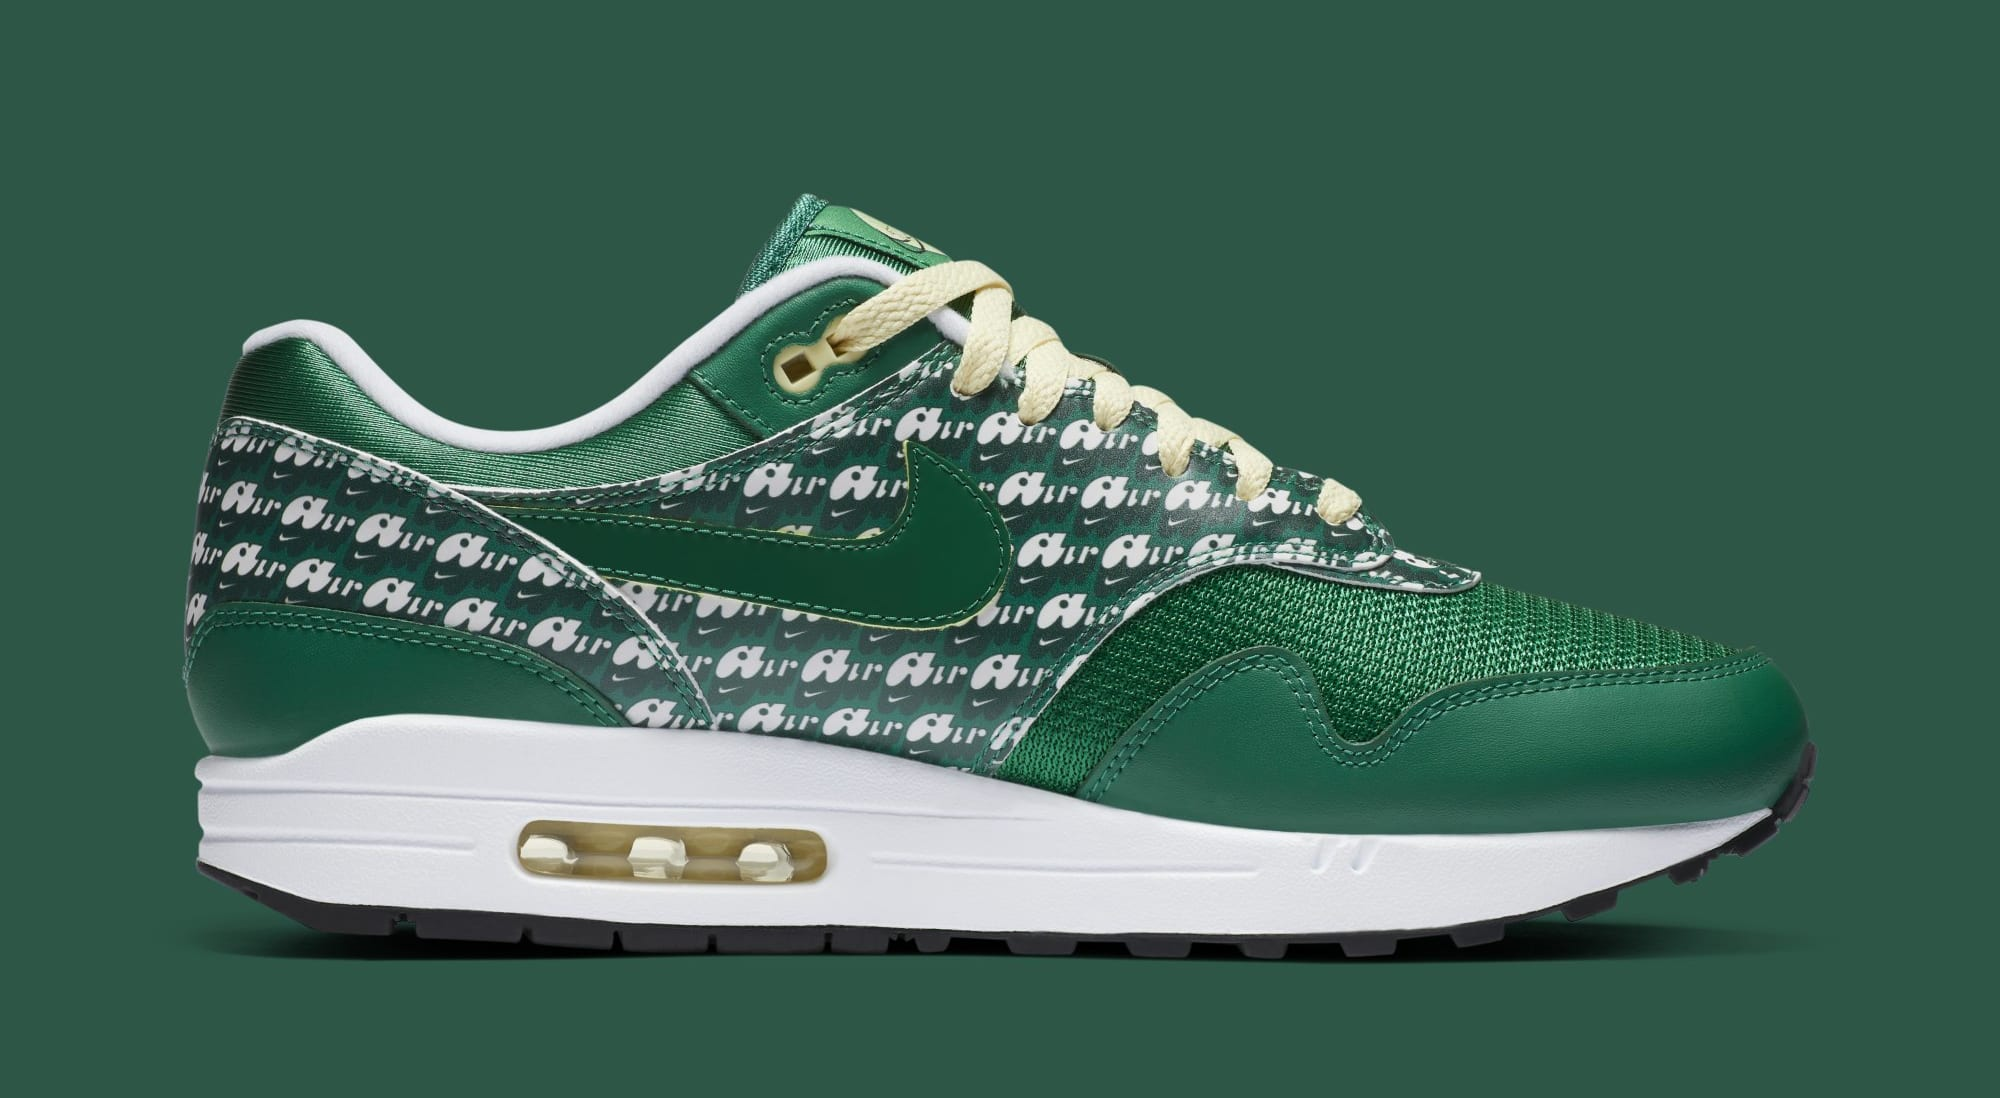 Nike Air Max 1 Premium 'Pine Green' CJ0609-300 Medial